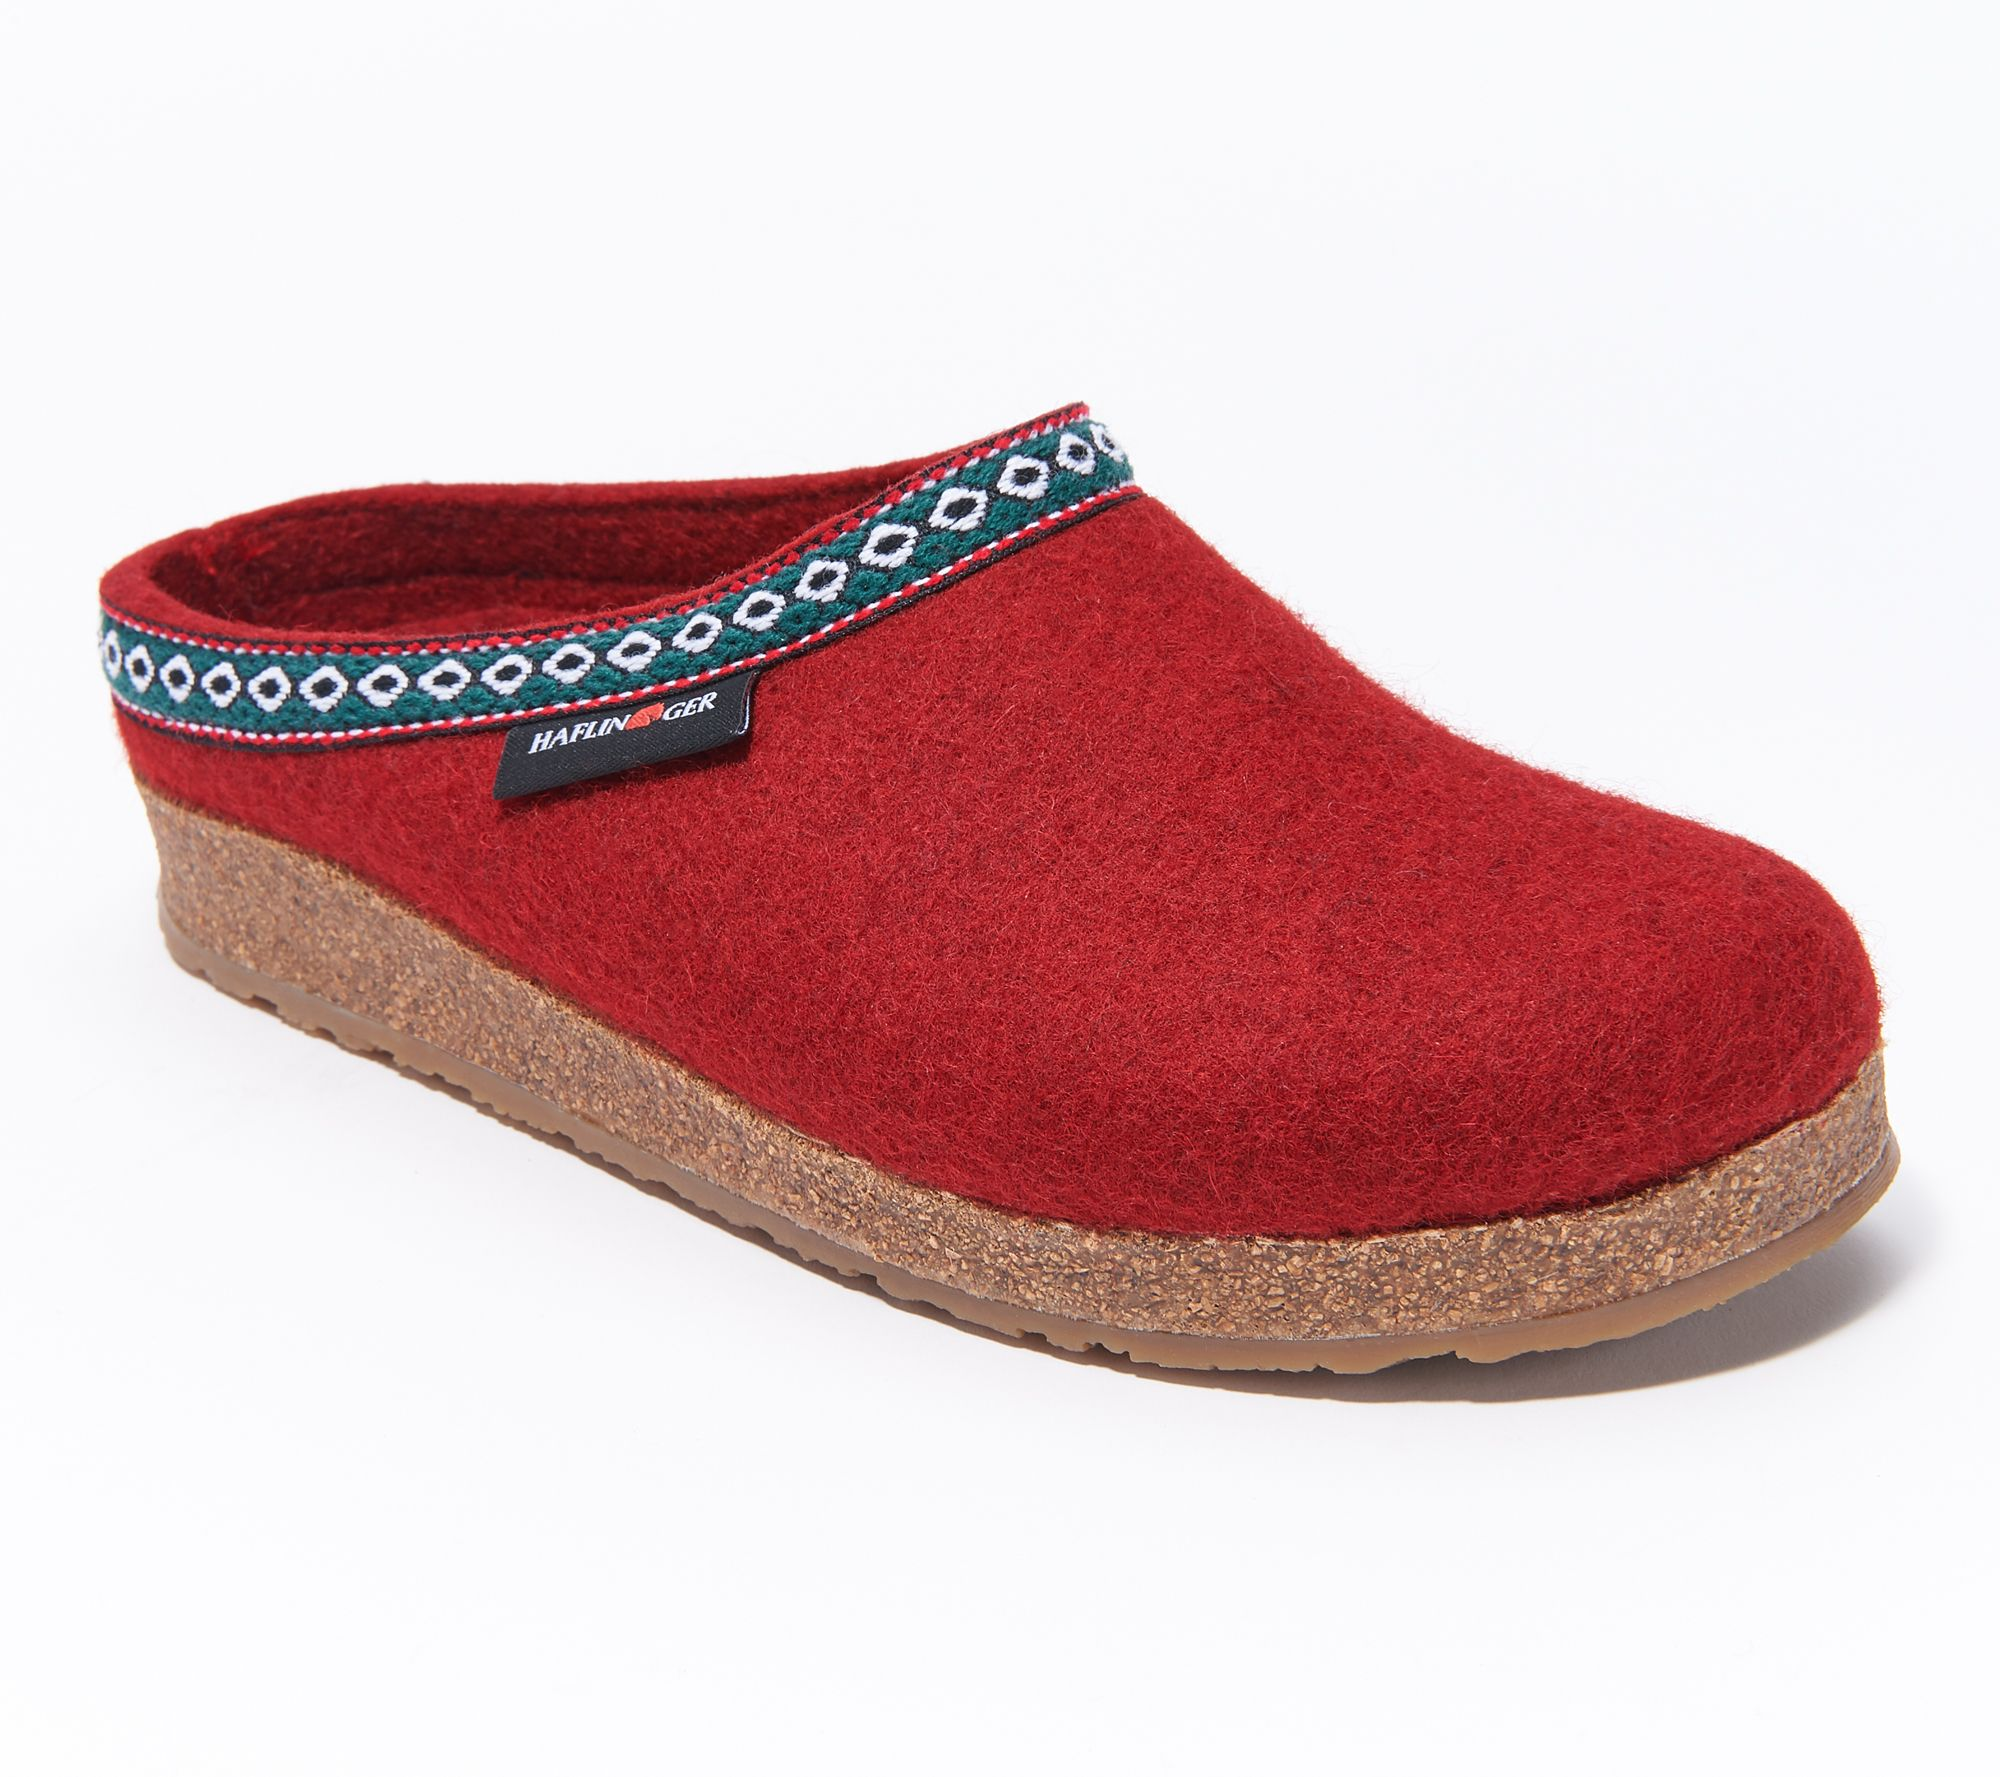 69427bfbe8e7 Haflinger Grizzly GZ Classic Wool Felt Clogs - Page 1 — QVC.com